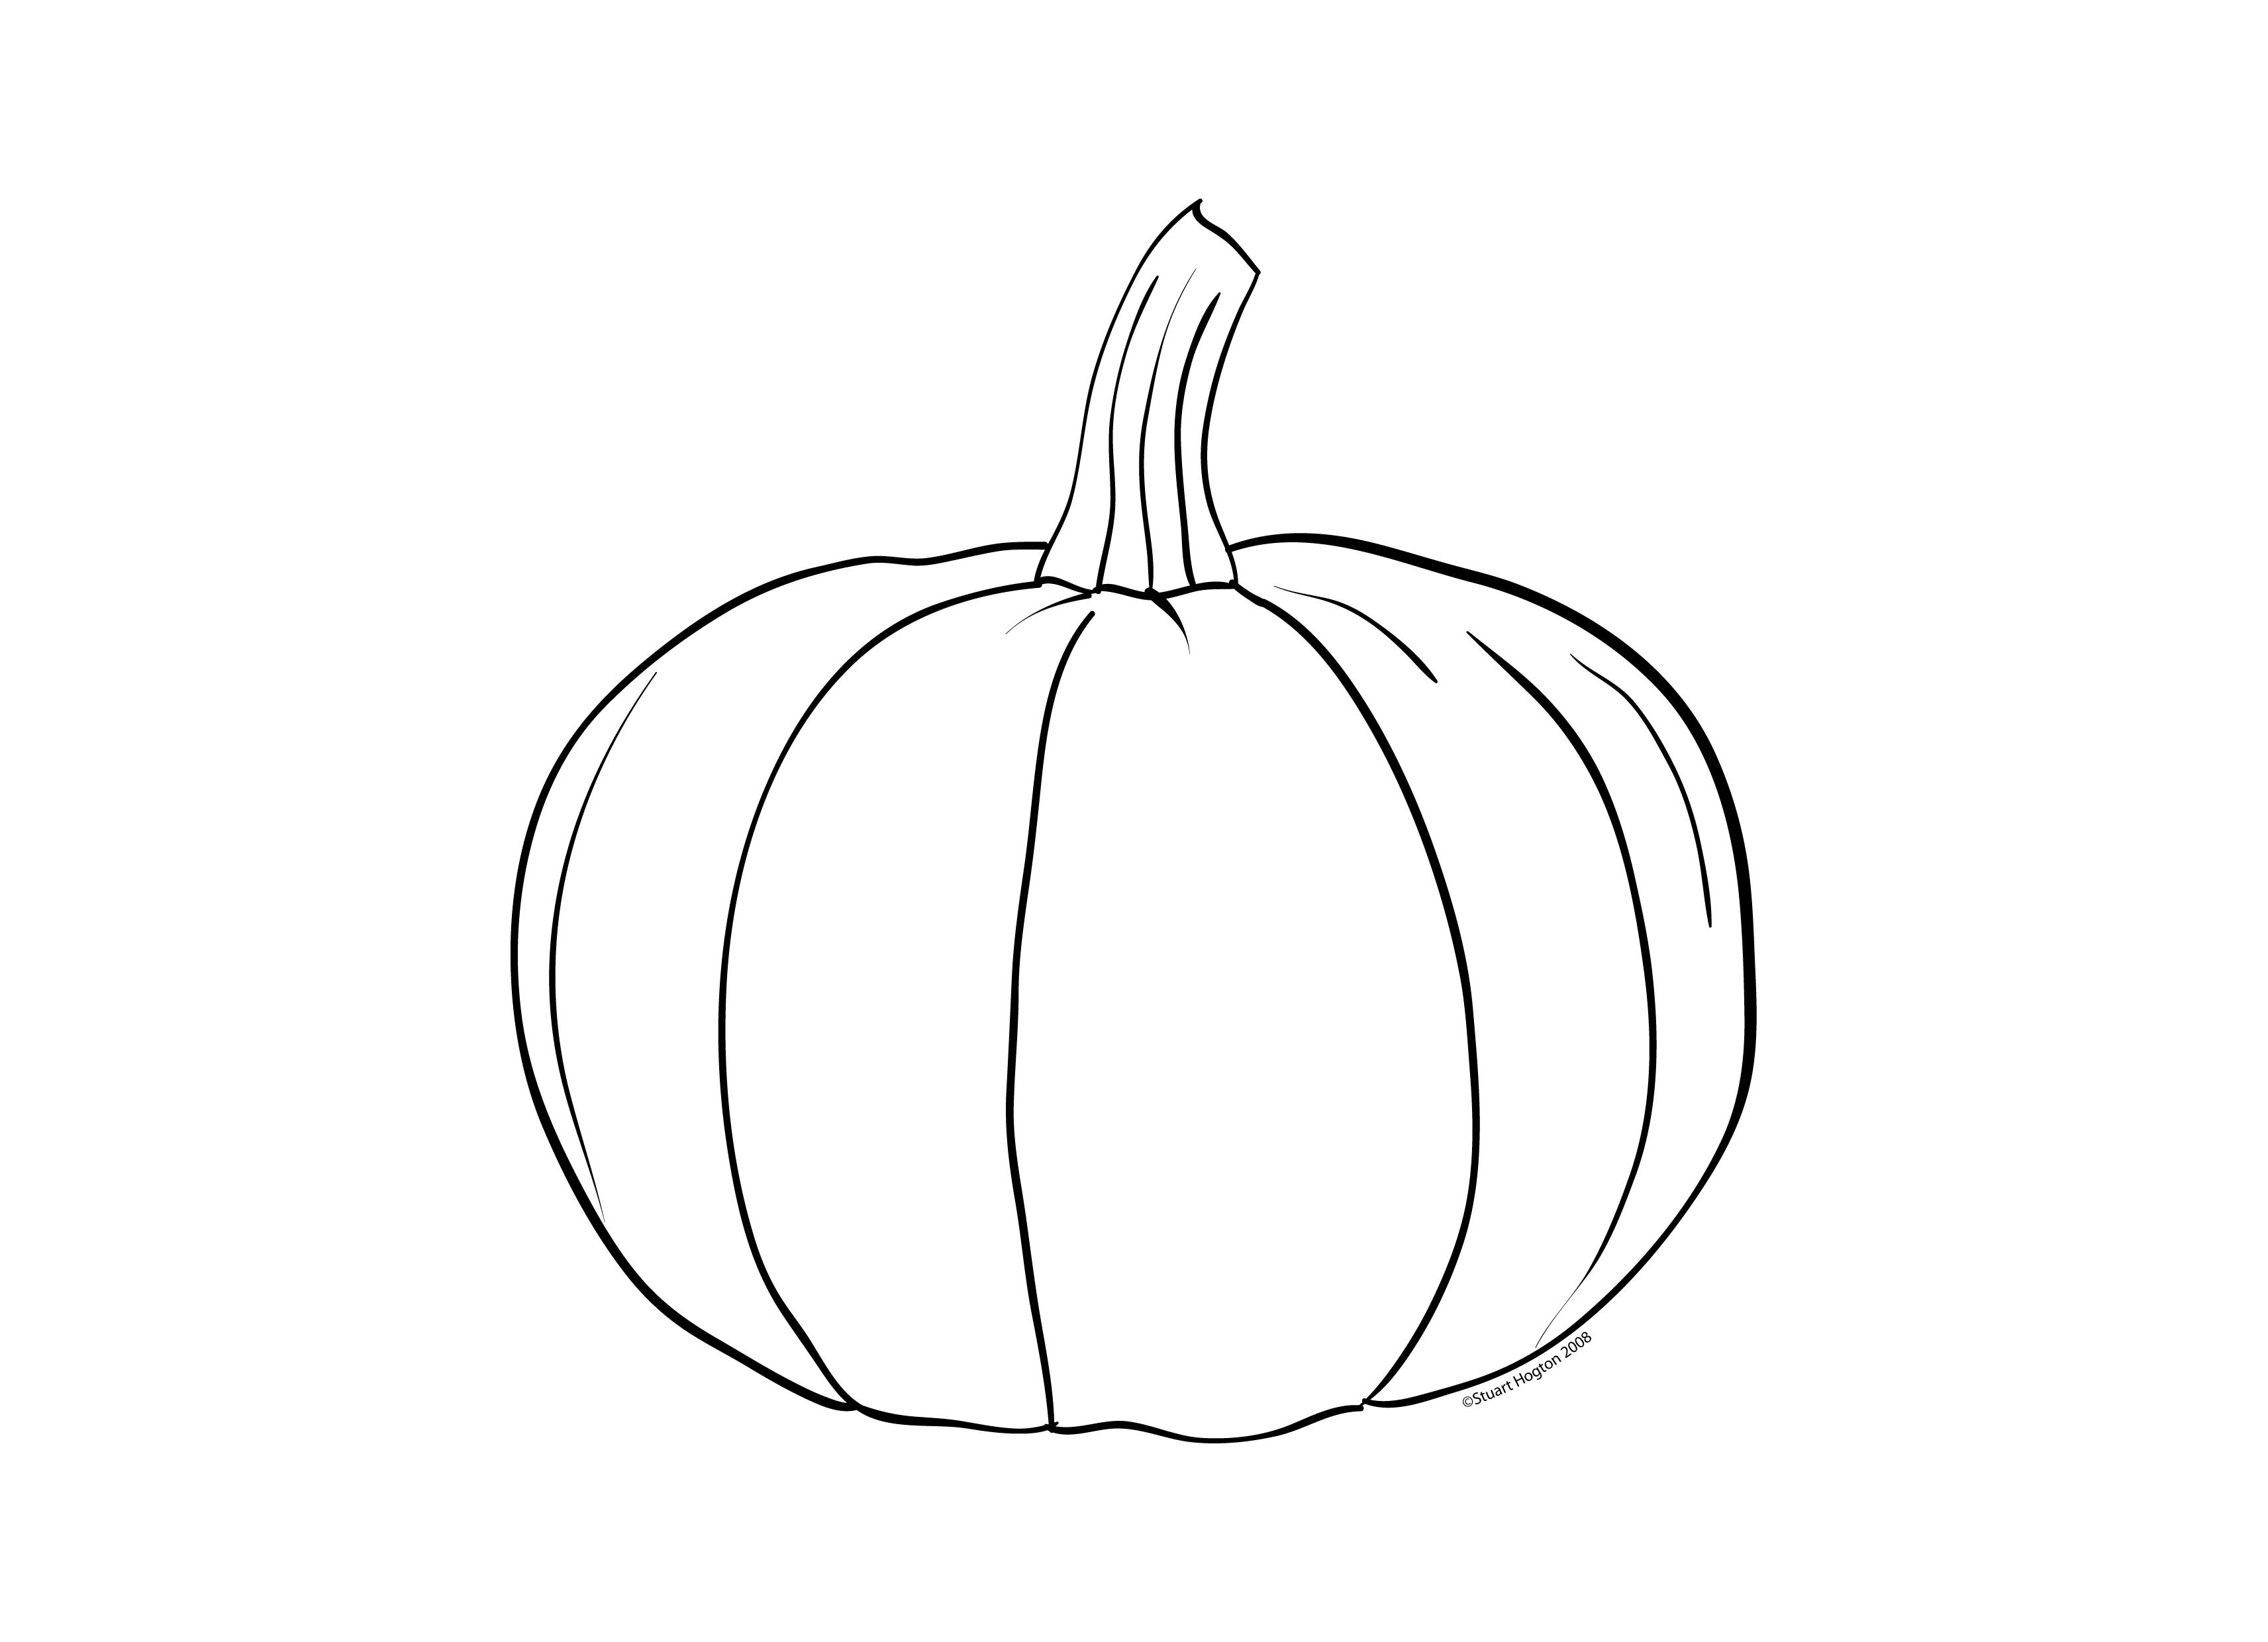 Coloring Pages Of Pumpkins  Free Printable Pumpkin Coloring Pages For Kids